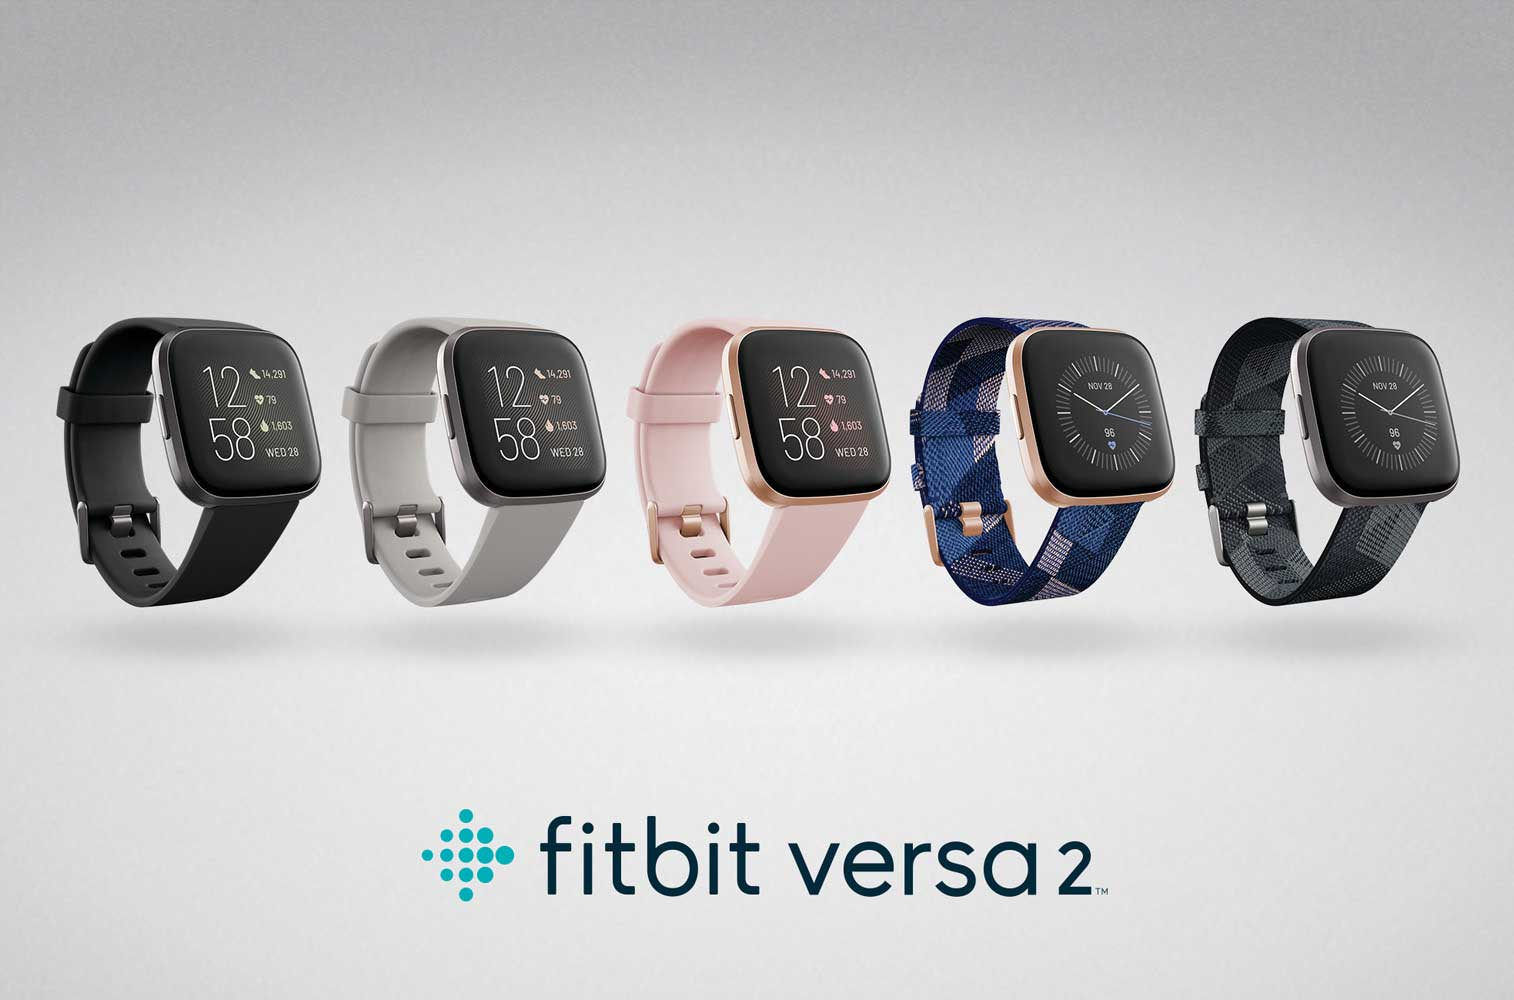 Fitbit Versa Family Accessory Band Official Fitbit Product Charcoal//Orange Small Woven Reflective